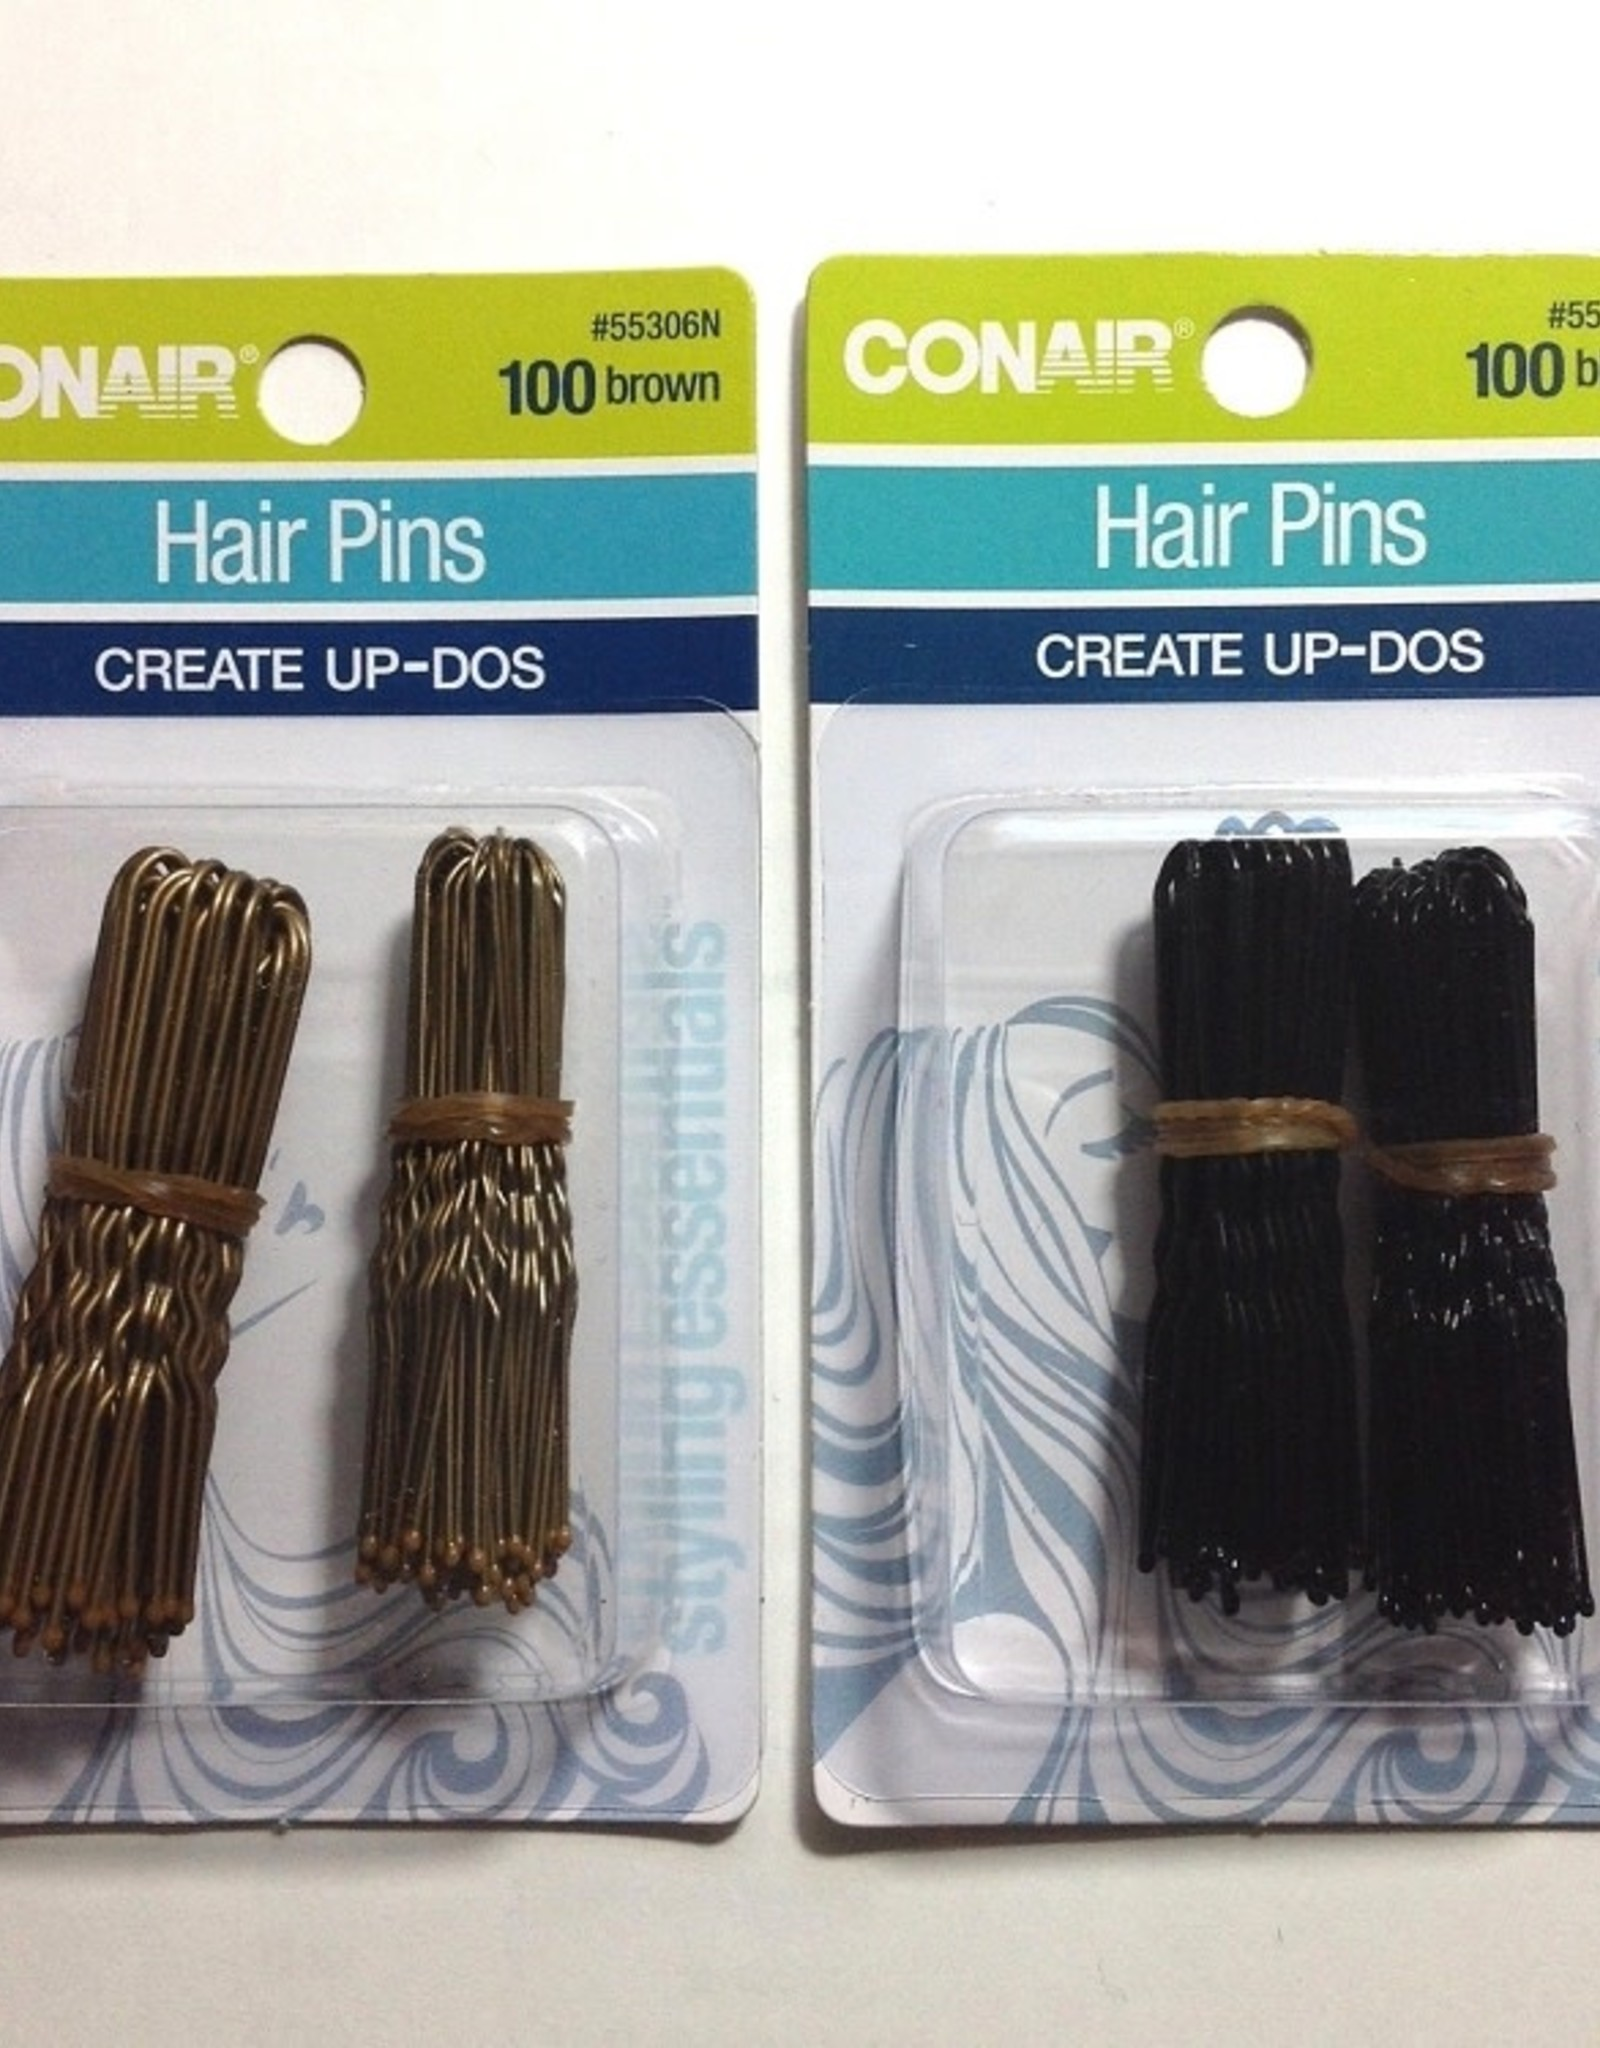 "Conair ha11 2"" Hair Pins with Tips (100pc.)"